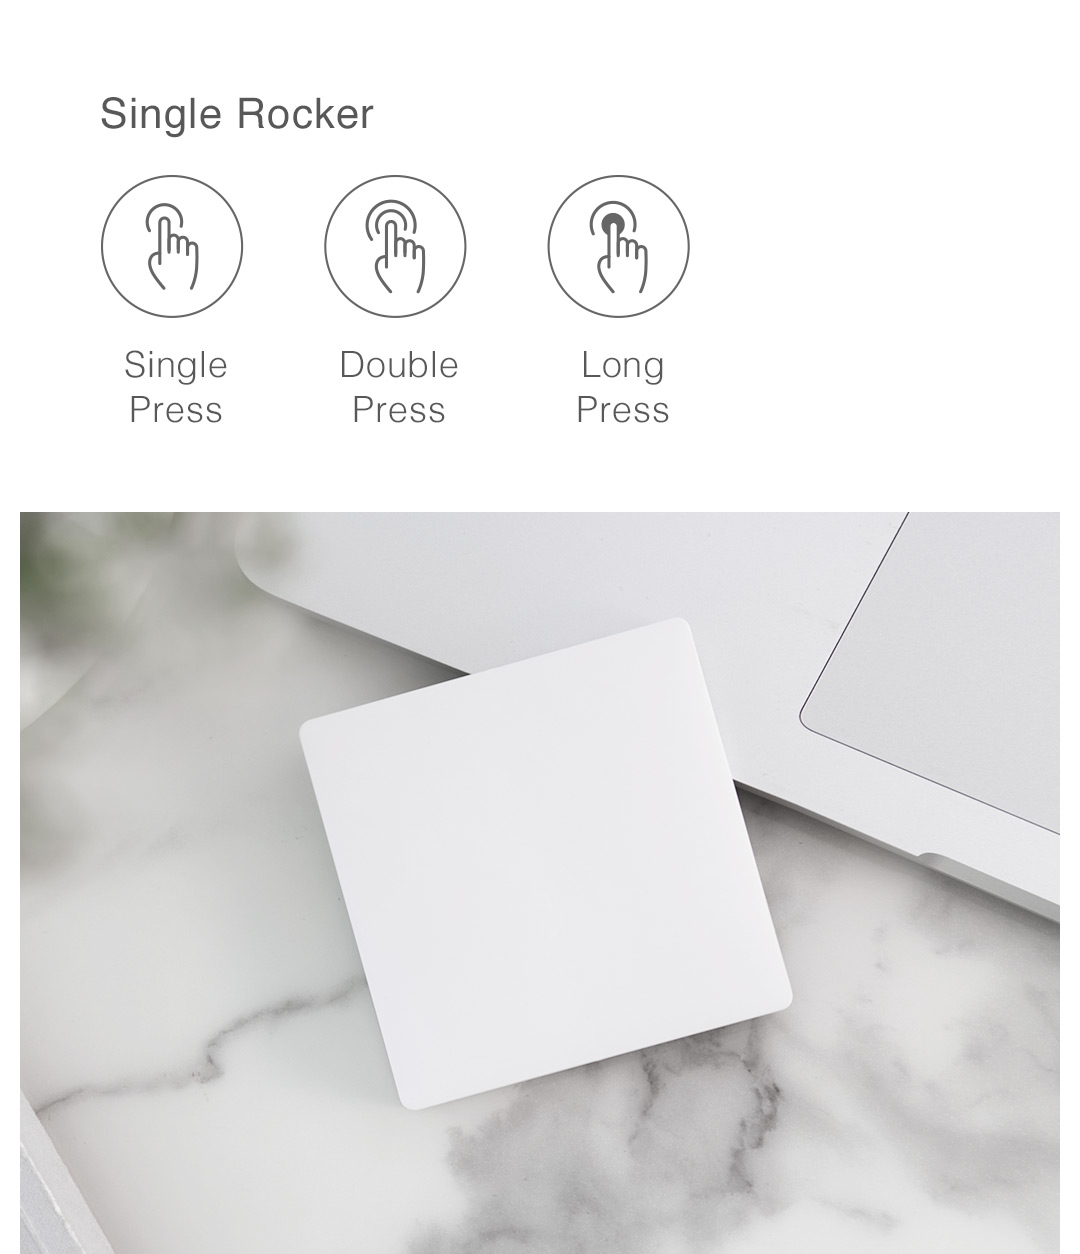 wireless smart switch with various actions to automate home automation products